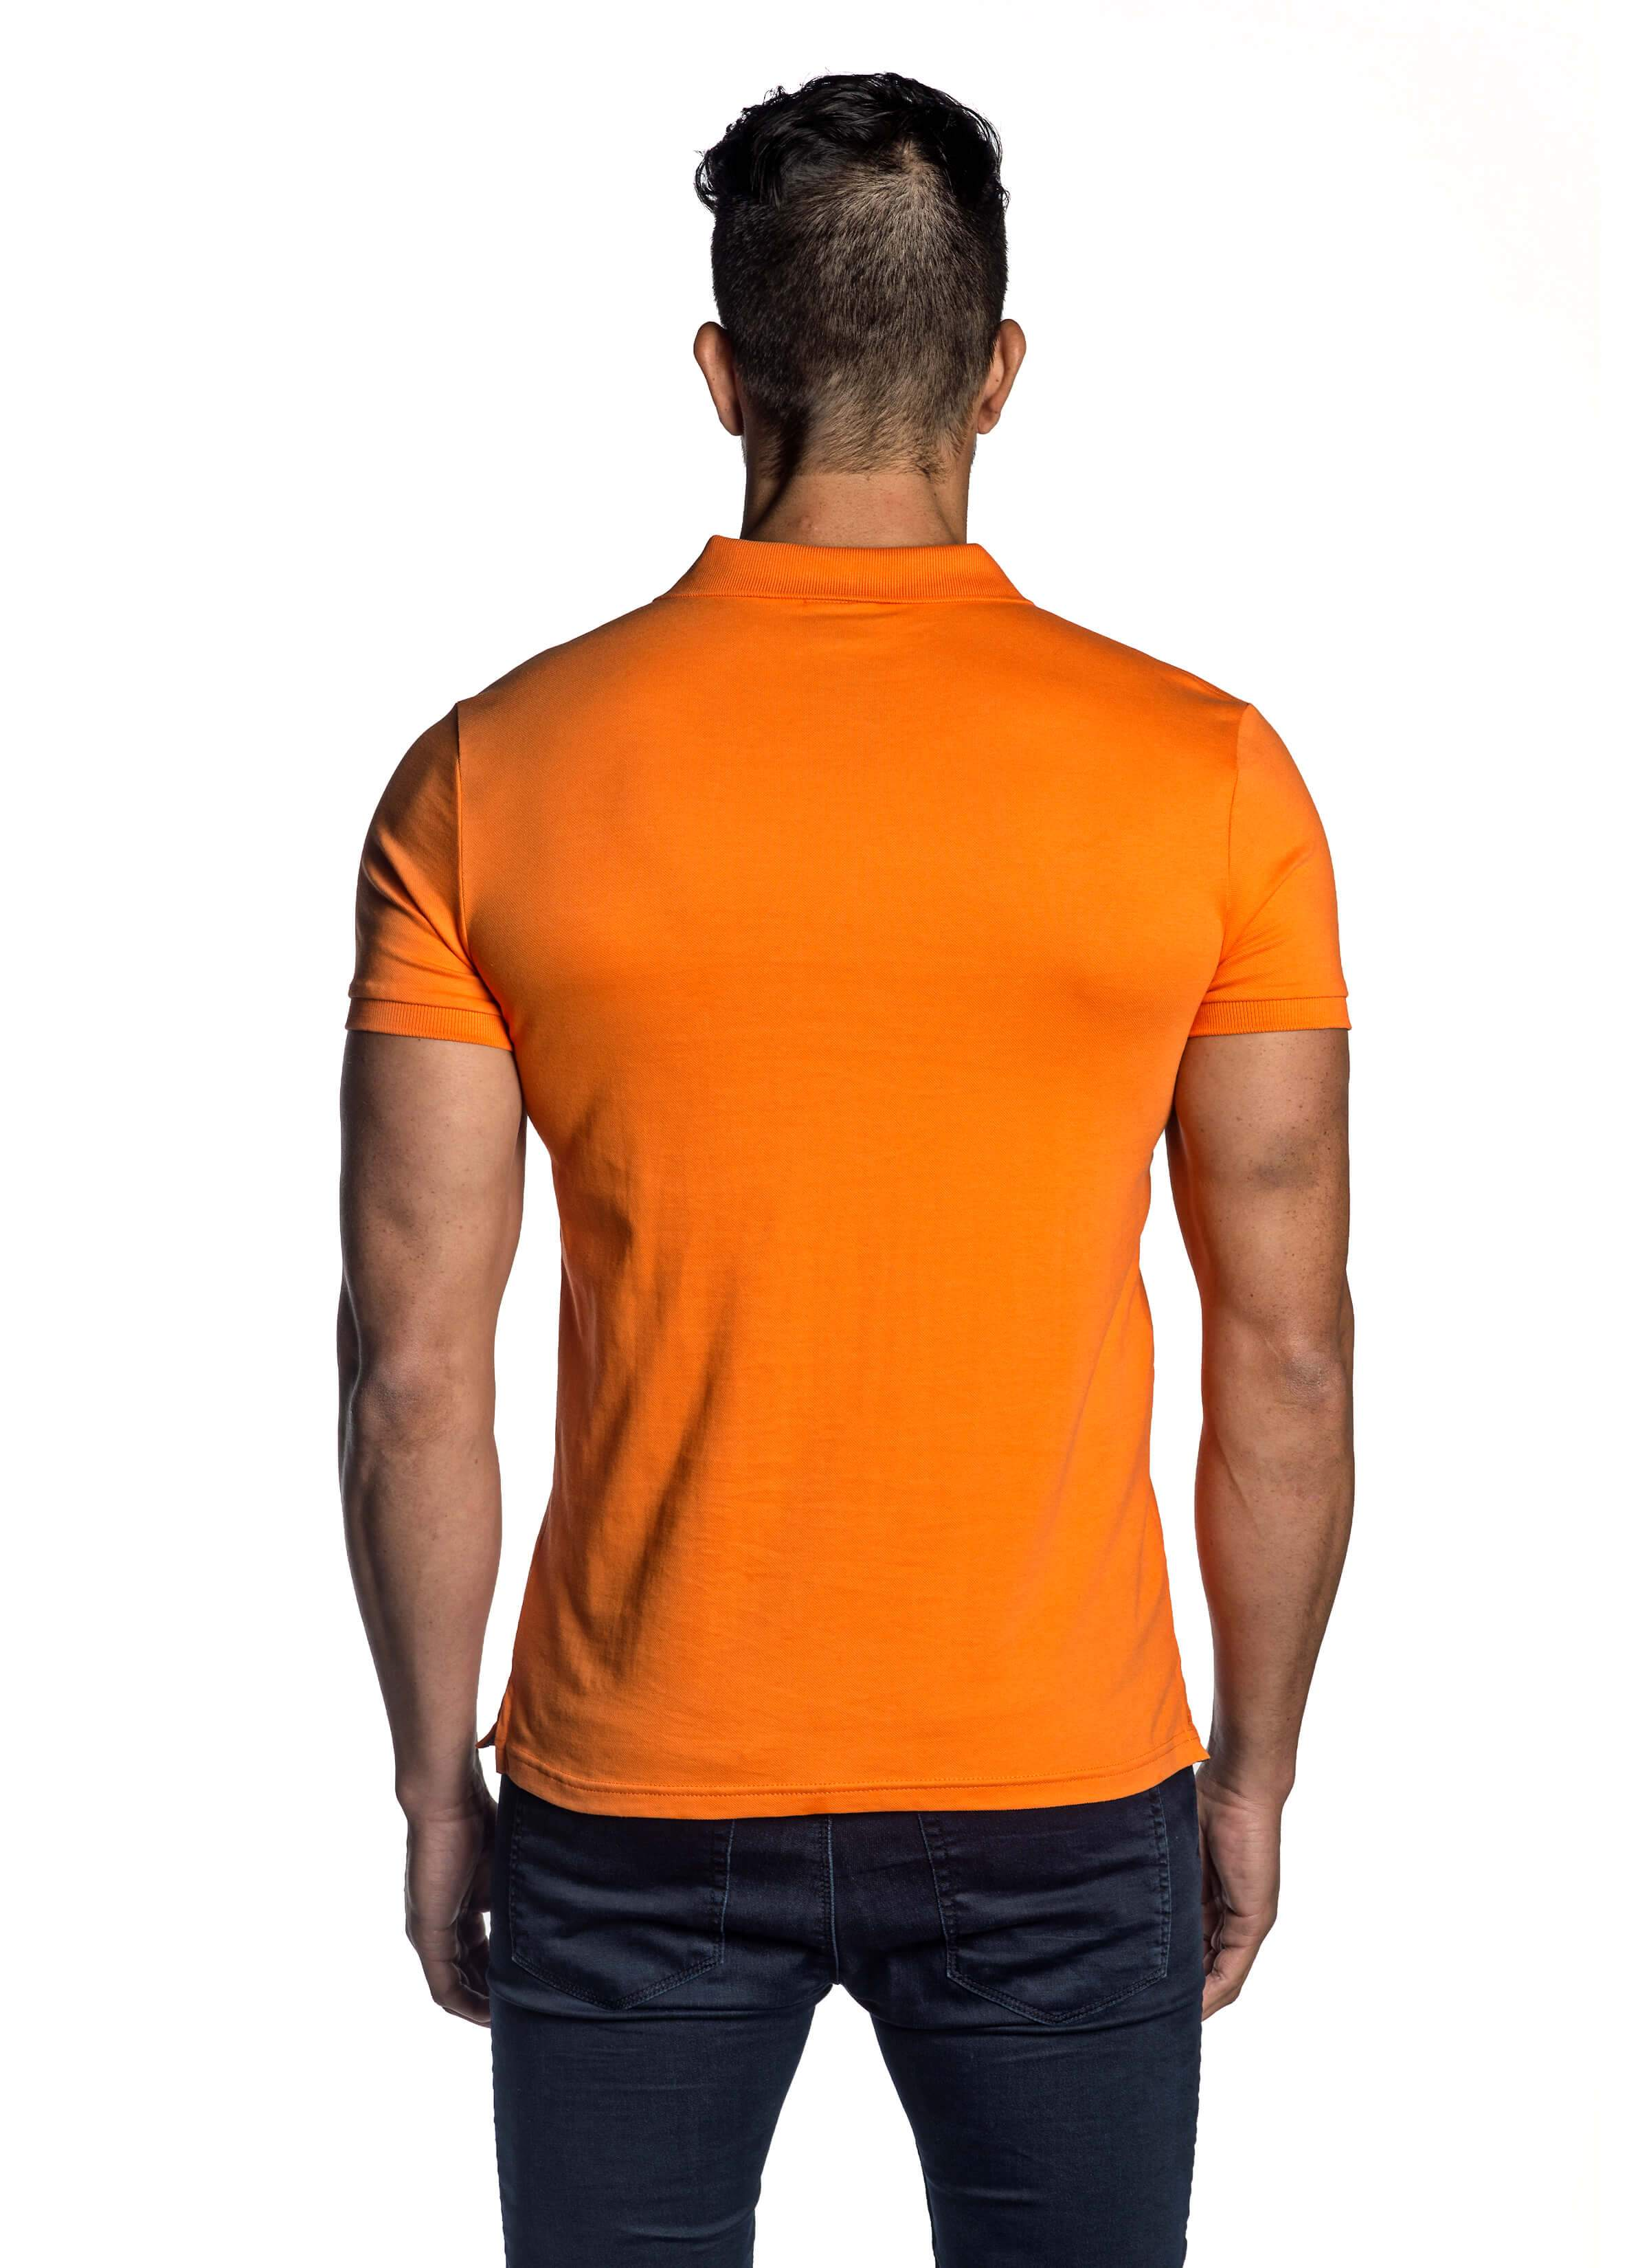 aa454faea9b9 Orange Short Sleeve Polo for Men PS-5010 | Jared Lang Official Website